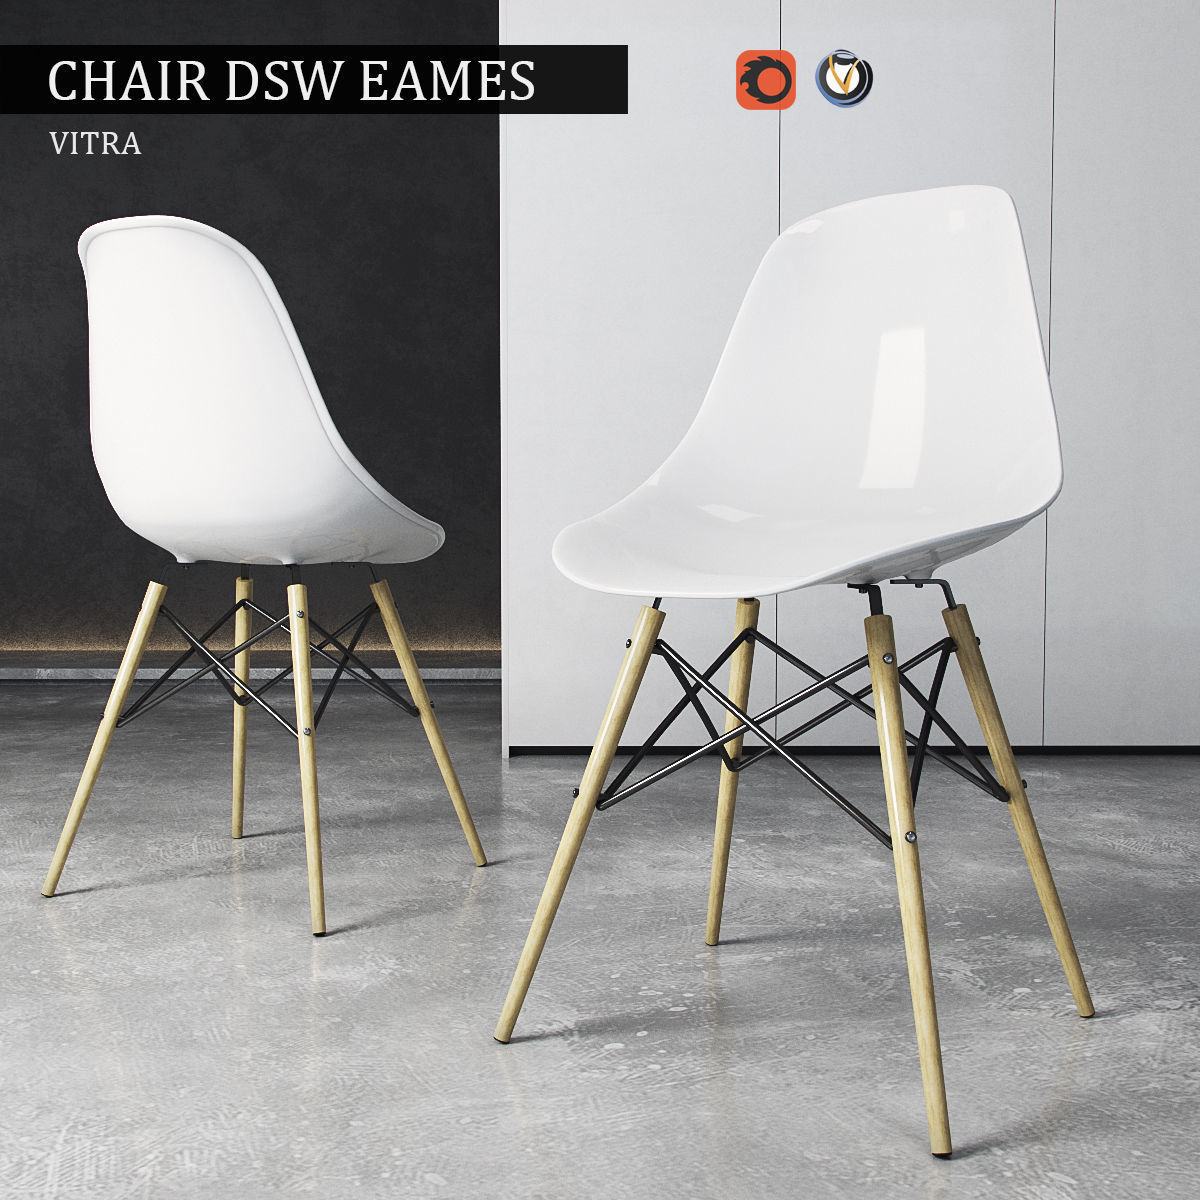 Eames Vitra Chair Vitra Dsw Eames Plastic Side 3d Model